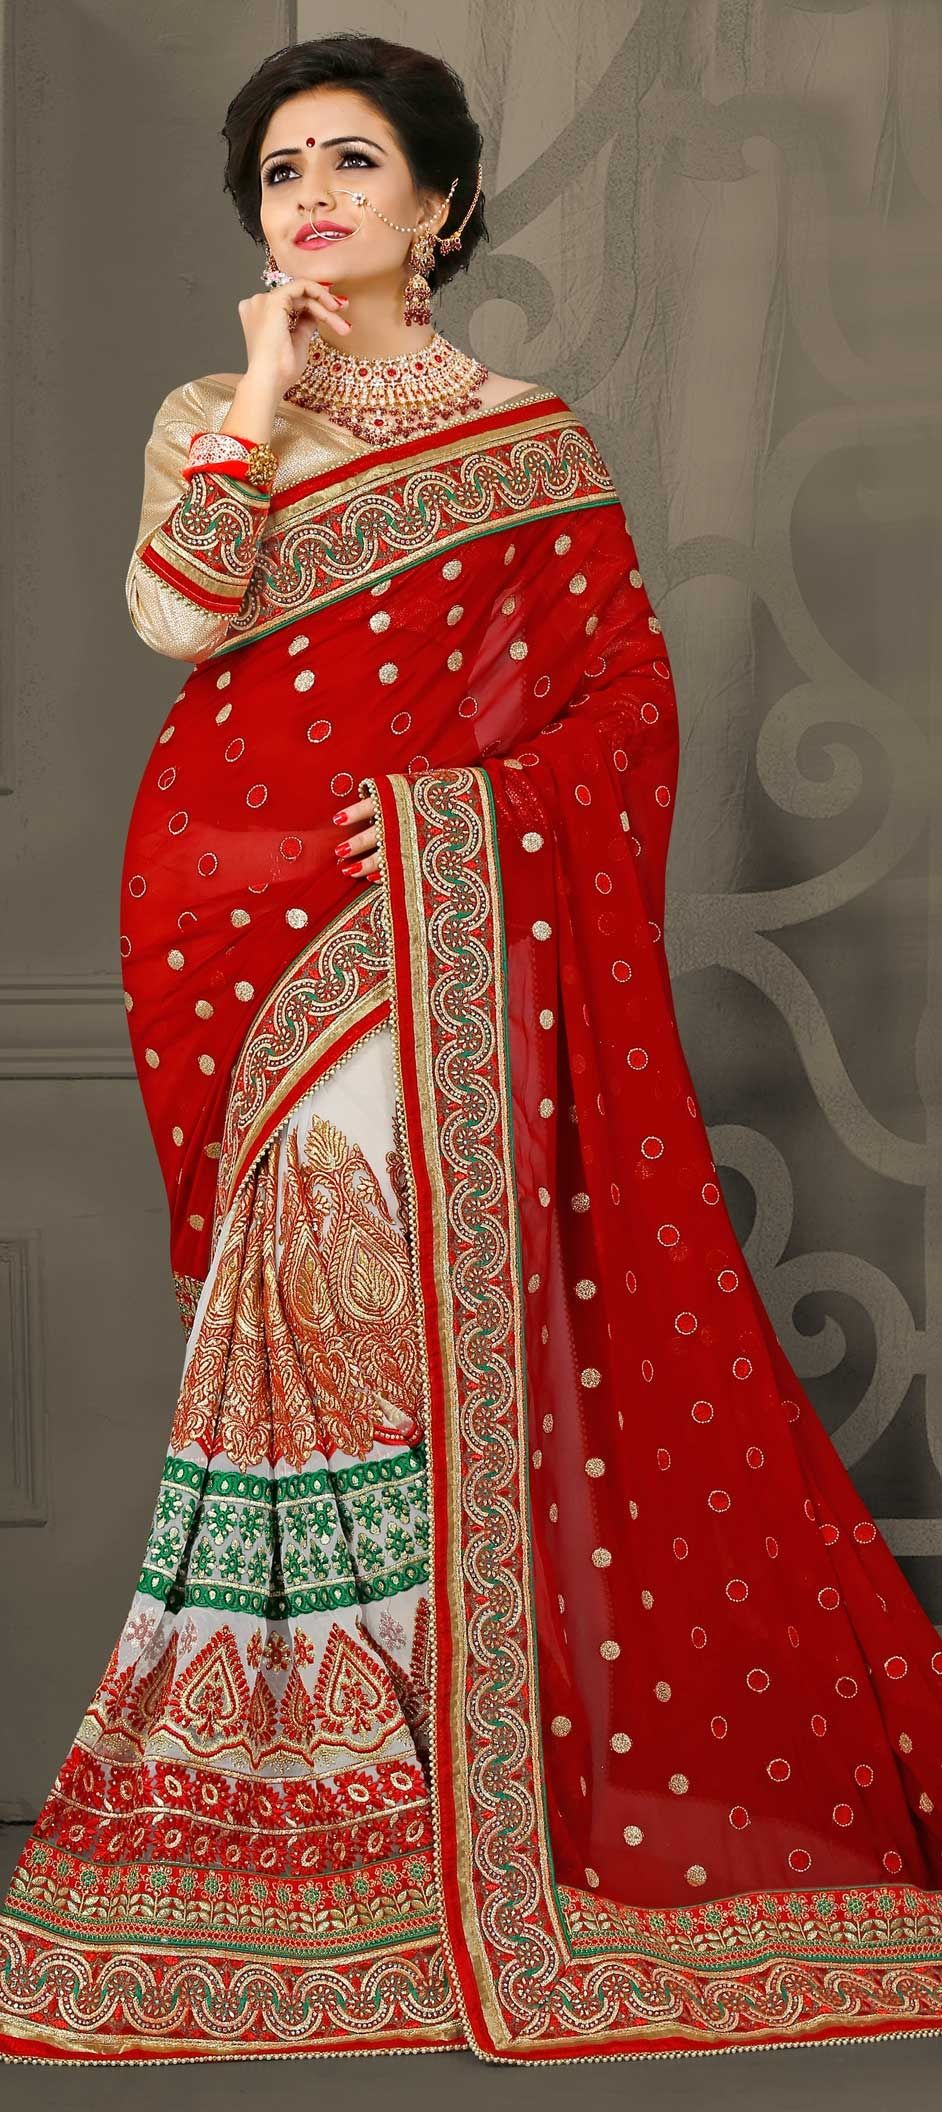 3eb5247fed47 767537: Red and Maroon, White and Off White color family Bridal ...